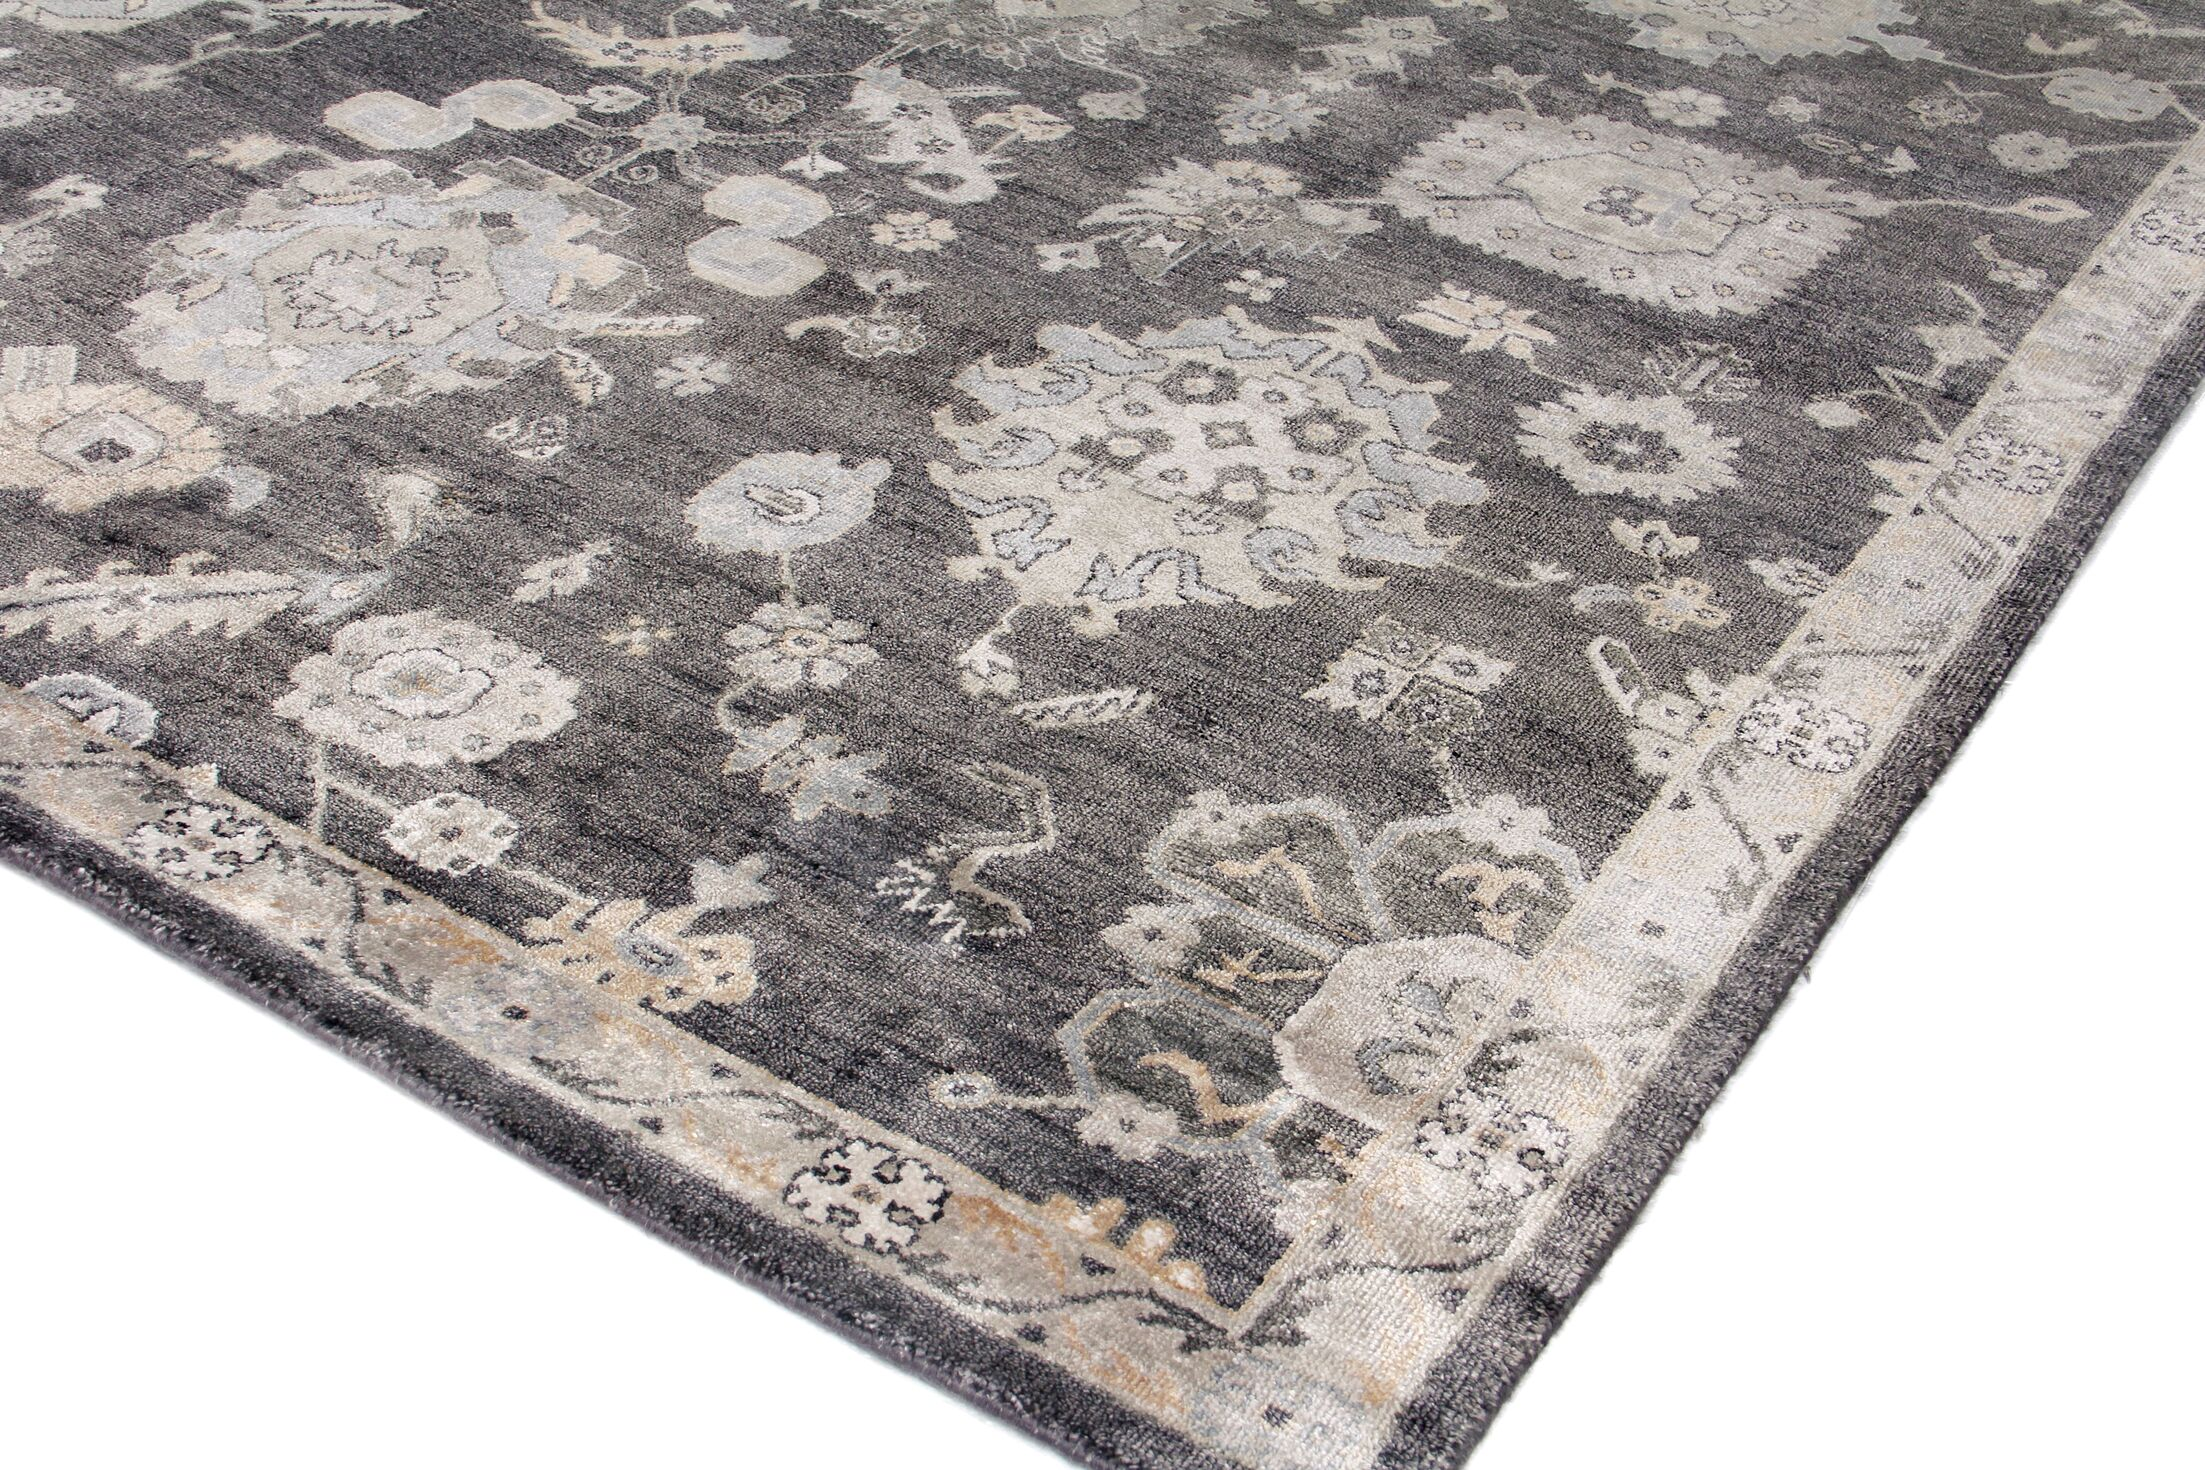 Museum Hand-Knotted Silk Midnight Blue Area Rug Rug Size: Rectangle 8' x 10'